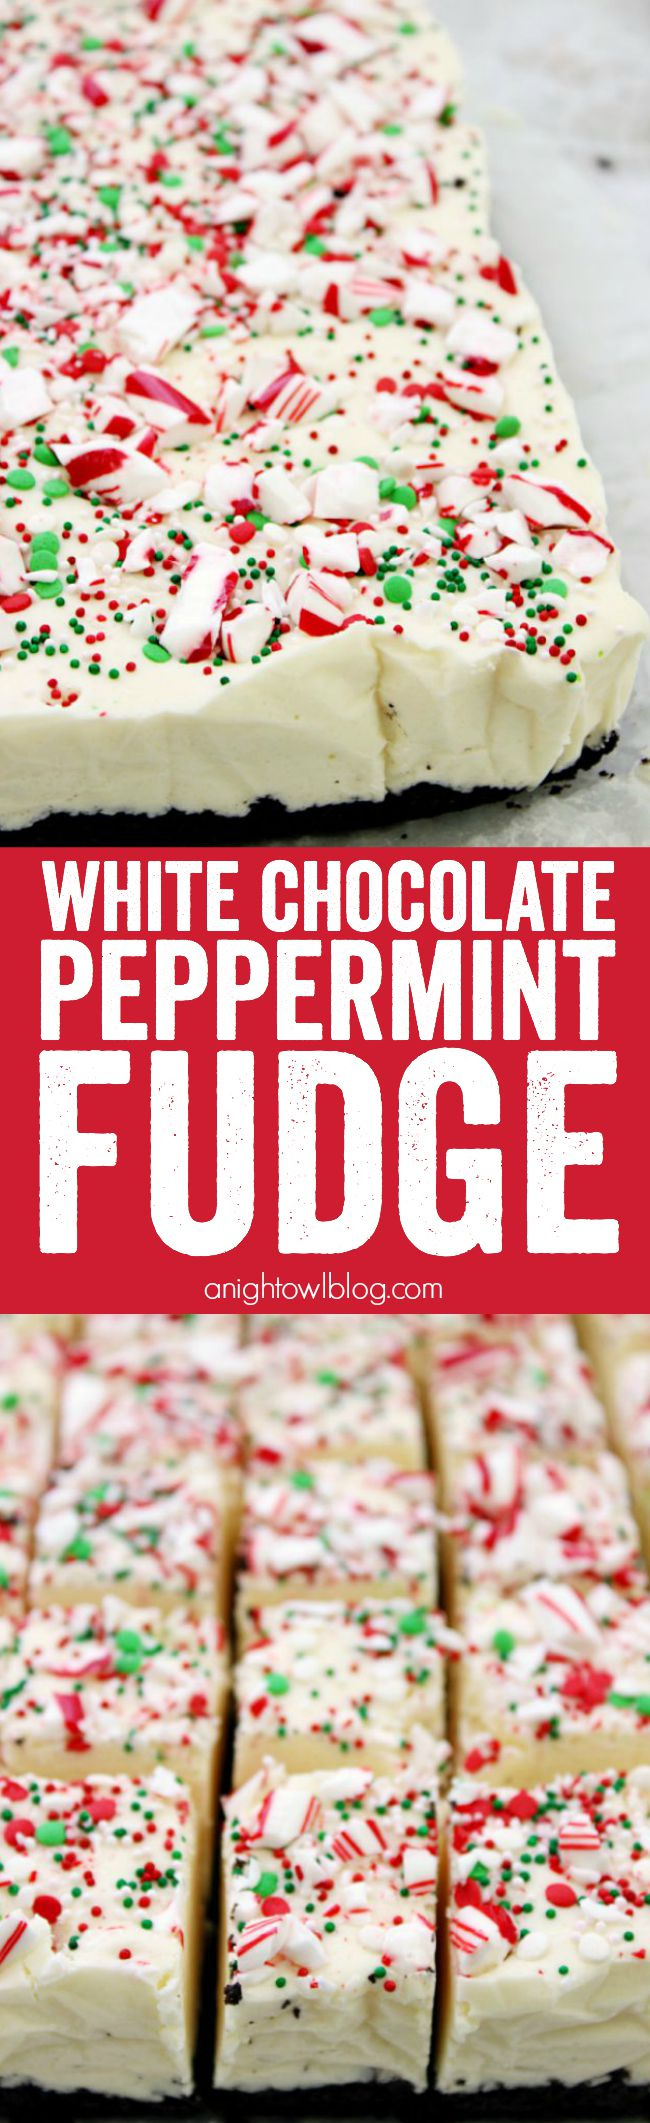 This White Chocolate Peppermint Fudge is a decadent, but easy, fudge recipe perfect for the holiday season. It also makes a great gift idea!